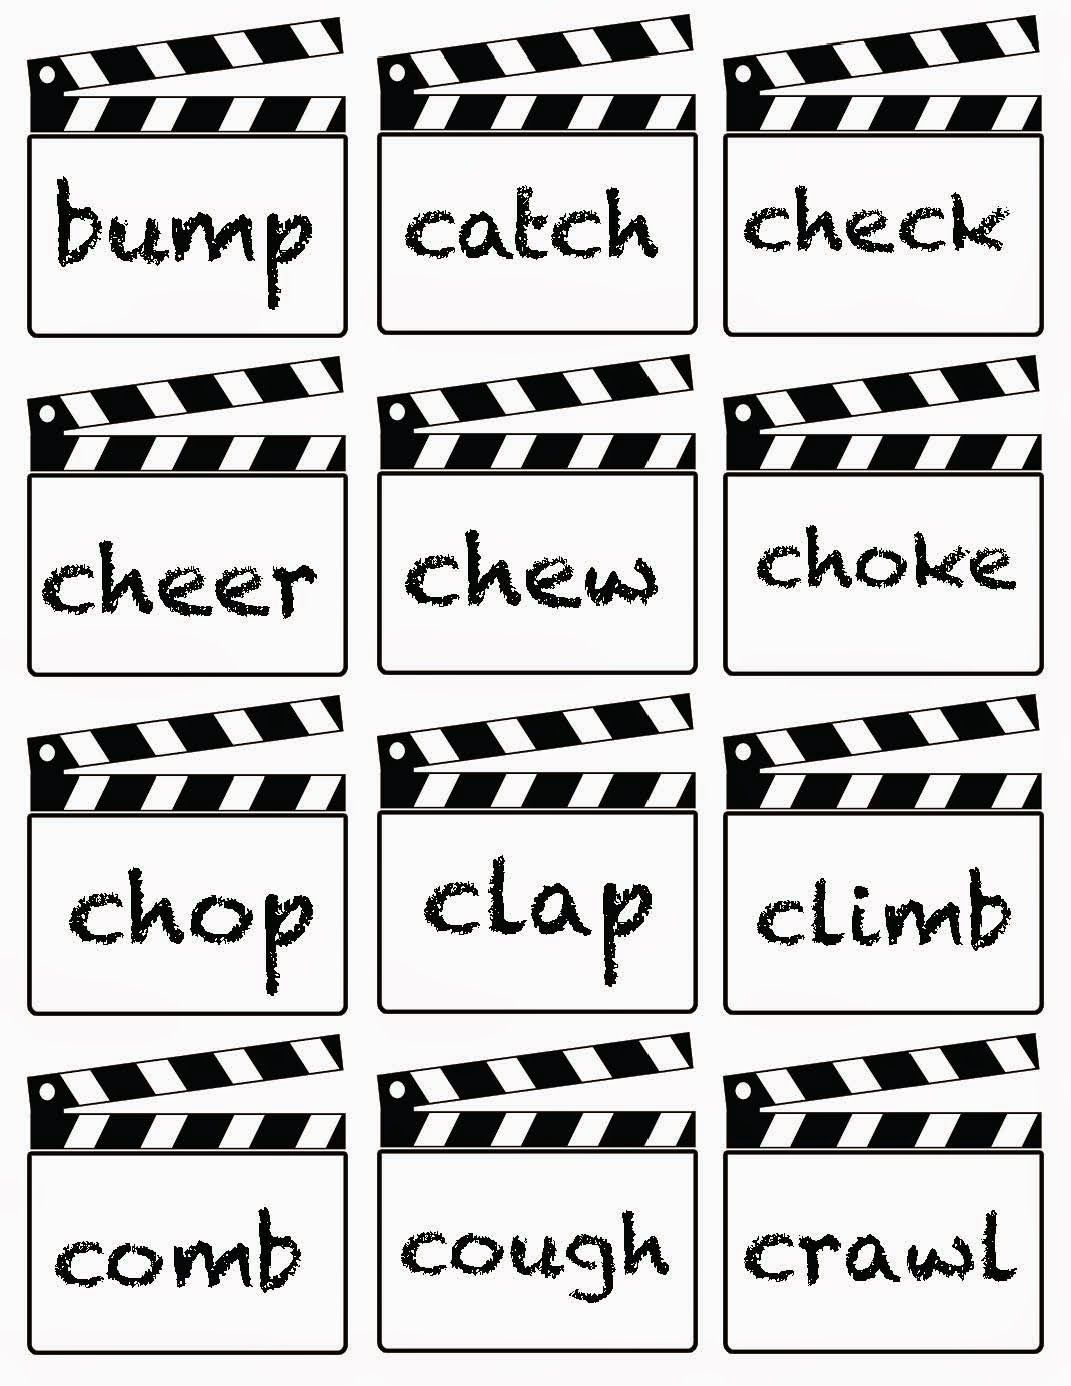 lights camera action verbs charades action verbs gopro and classroom bies lights camera action verbs charades